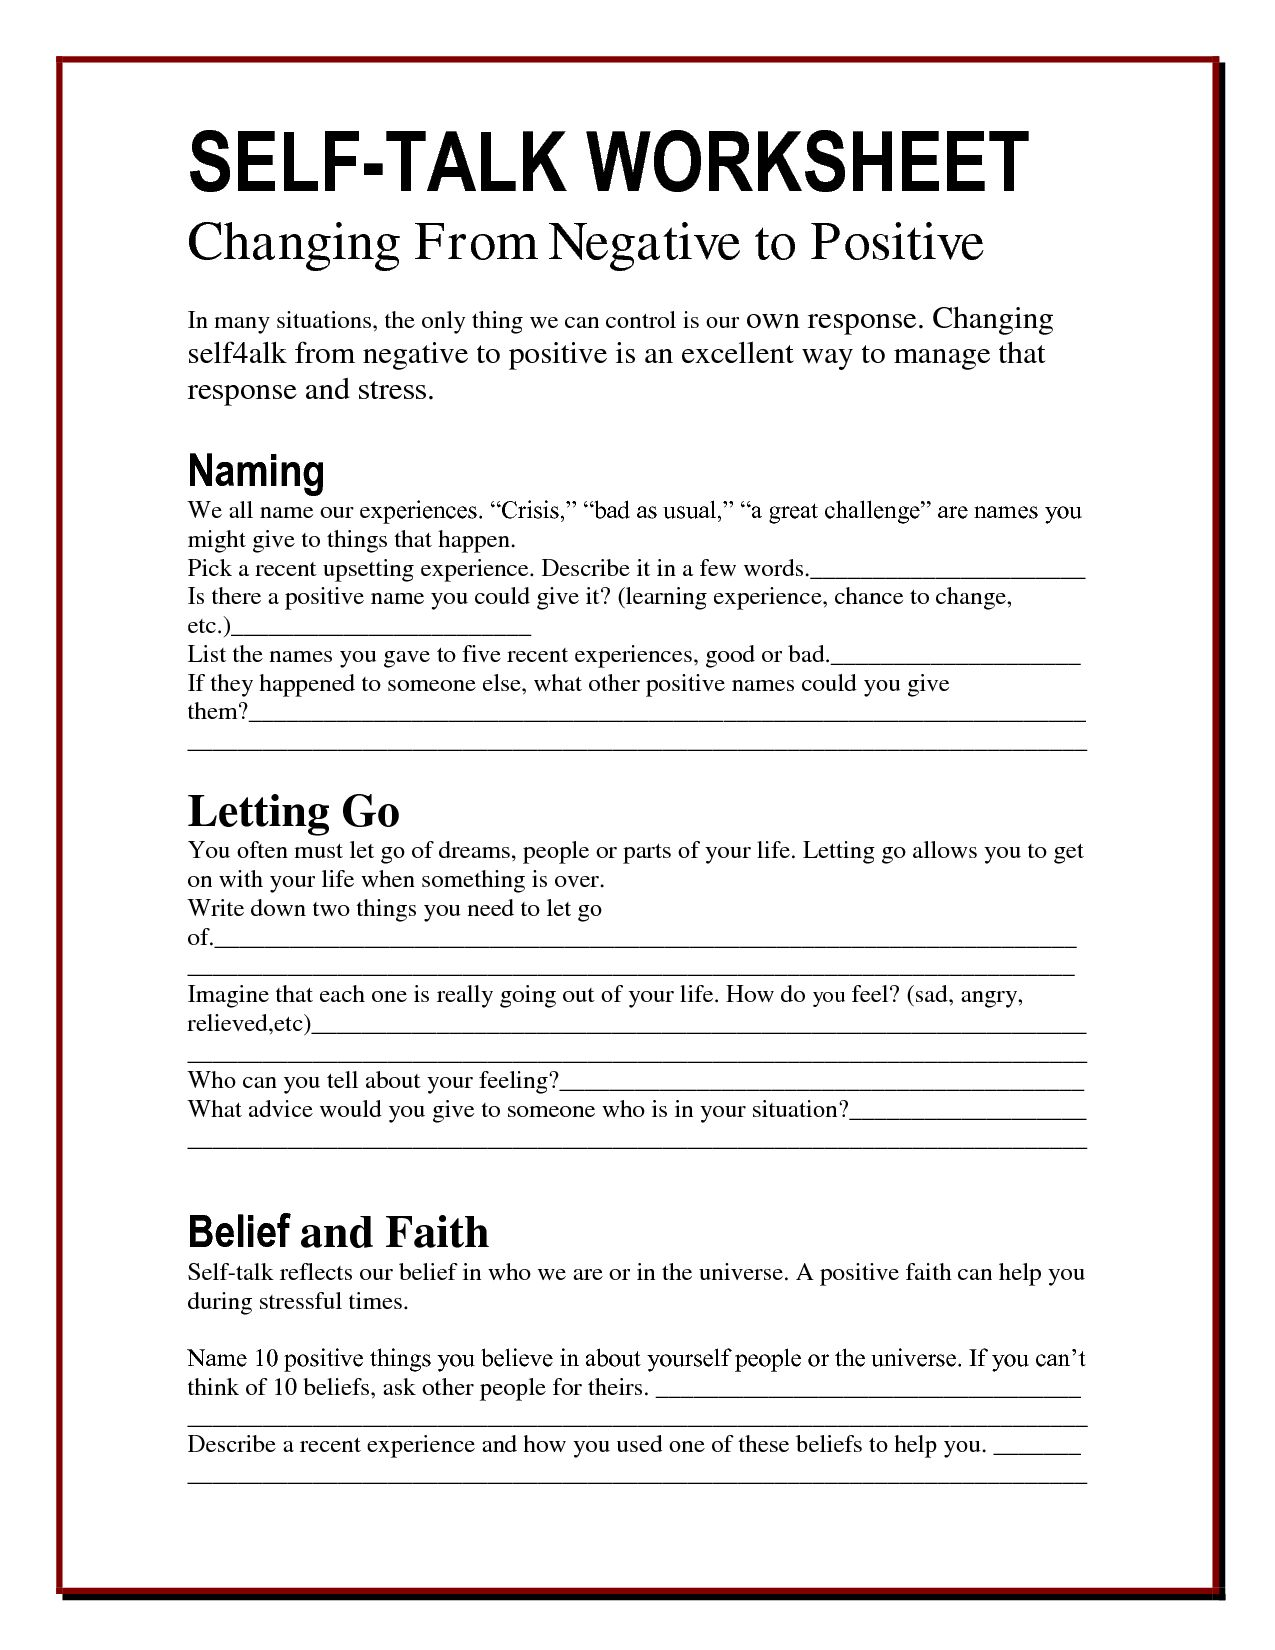 Worksheets Social Anxiety Worksheets pin by brenda johnson on therapy activities pinterest self talk worksheets changing negatives to positives